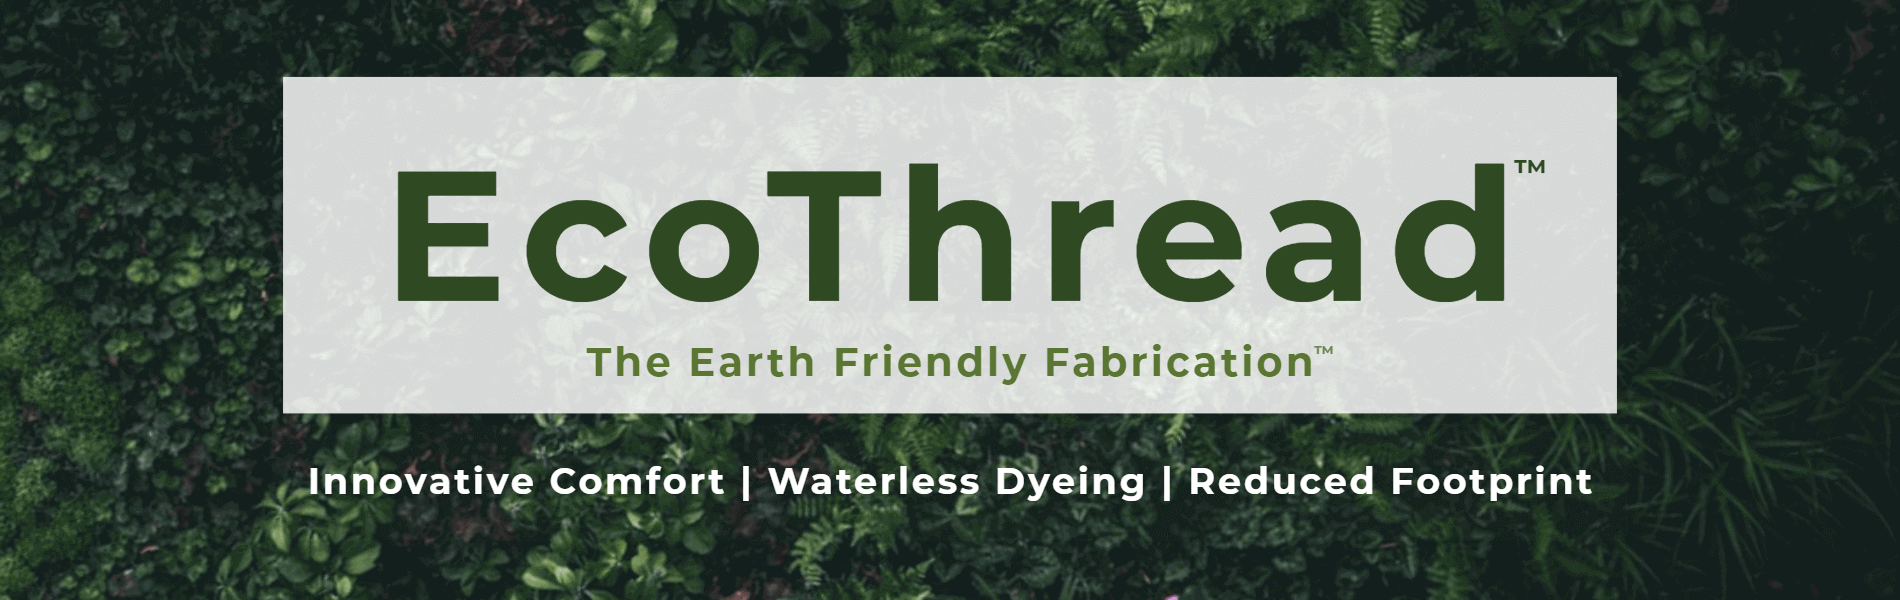 EcoThread -- The Earth Friendly Fabrication - Innovative Comfort, Waterless Dyeing, Reduced Footprint